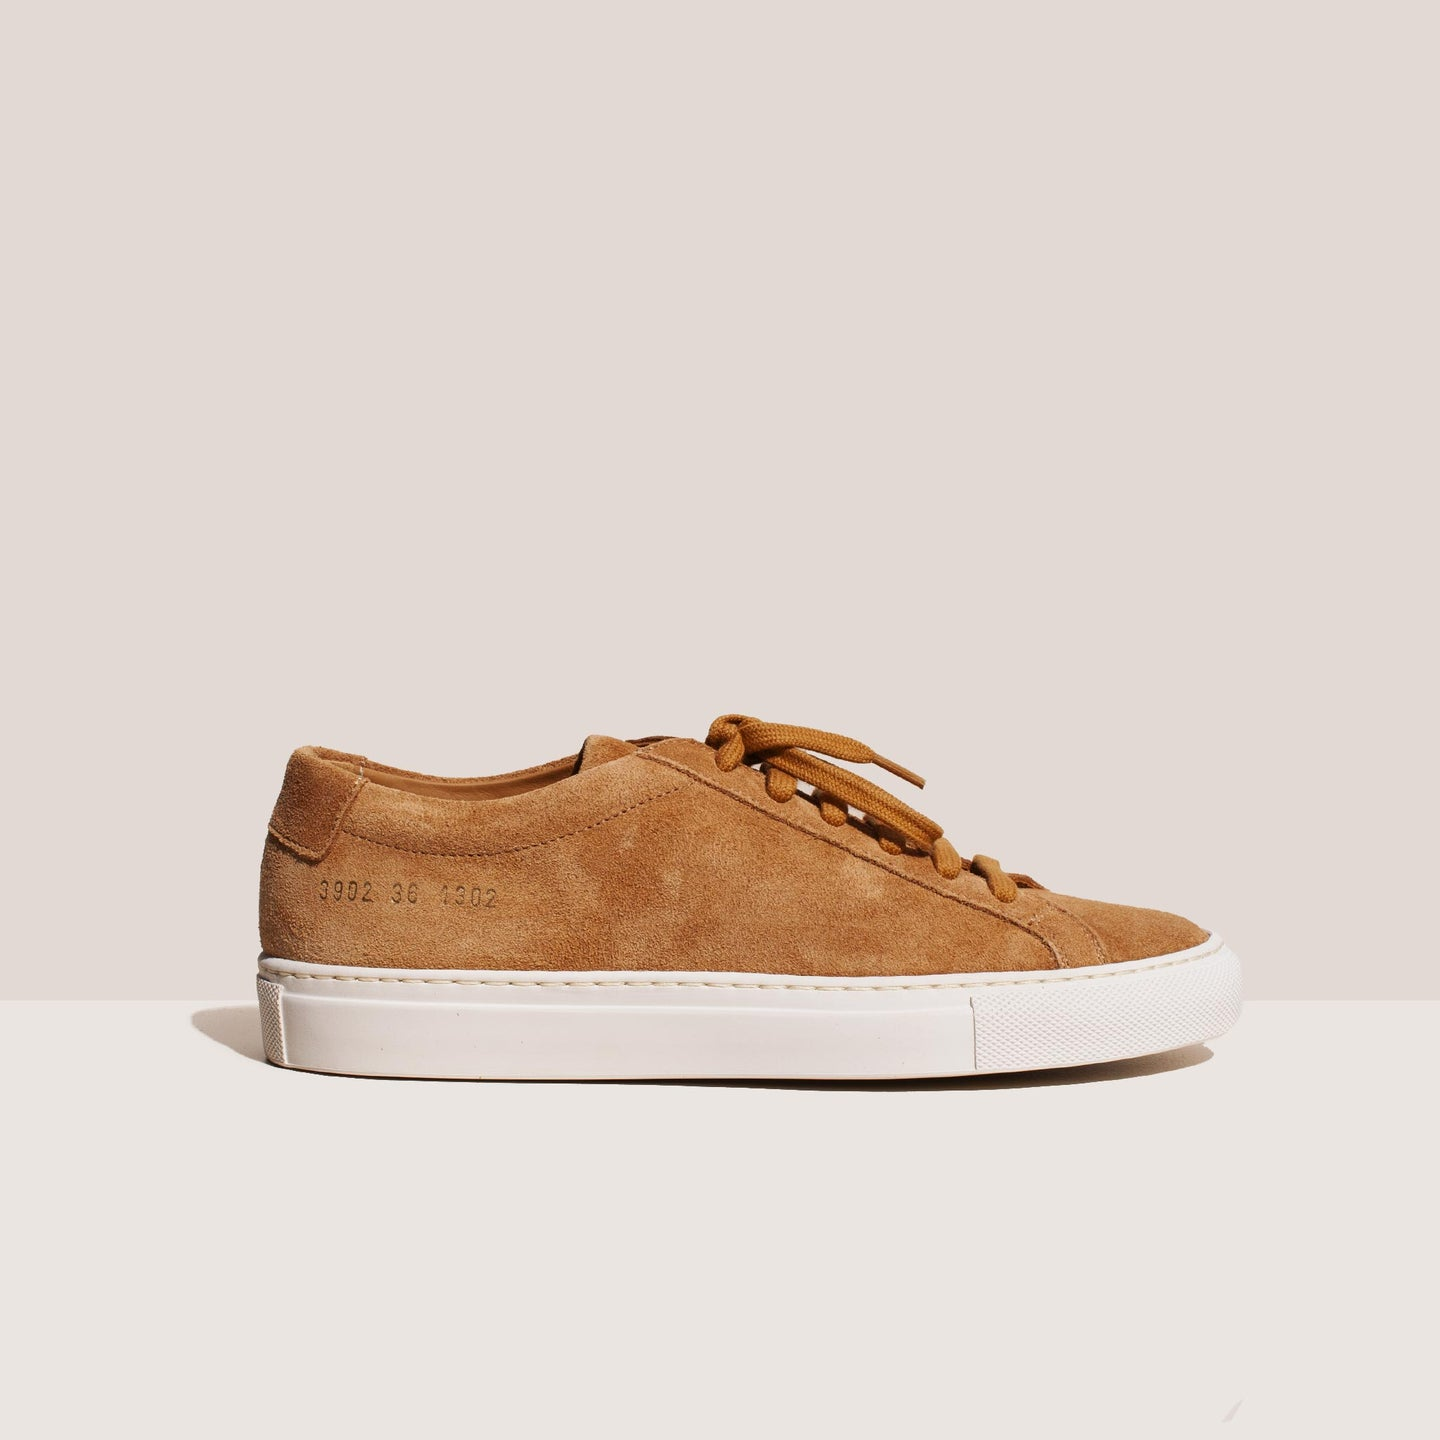 Common Projects - Original Achilles Low - Tan Suede, side view, available at LCD.